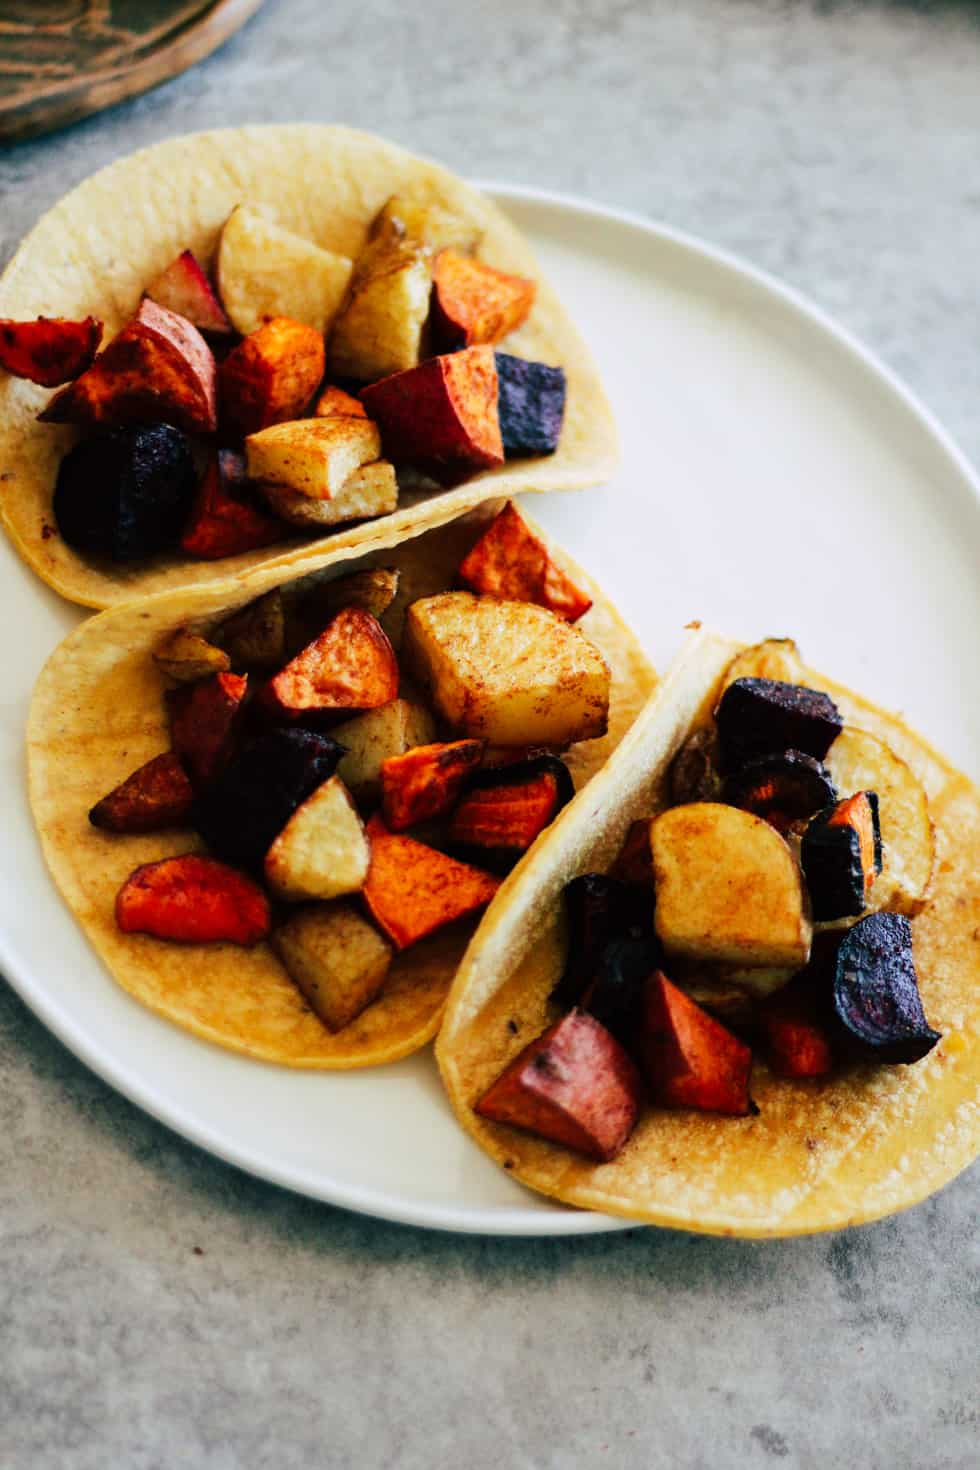 Roasted root vegetables on corn tortillas.